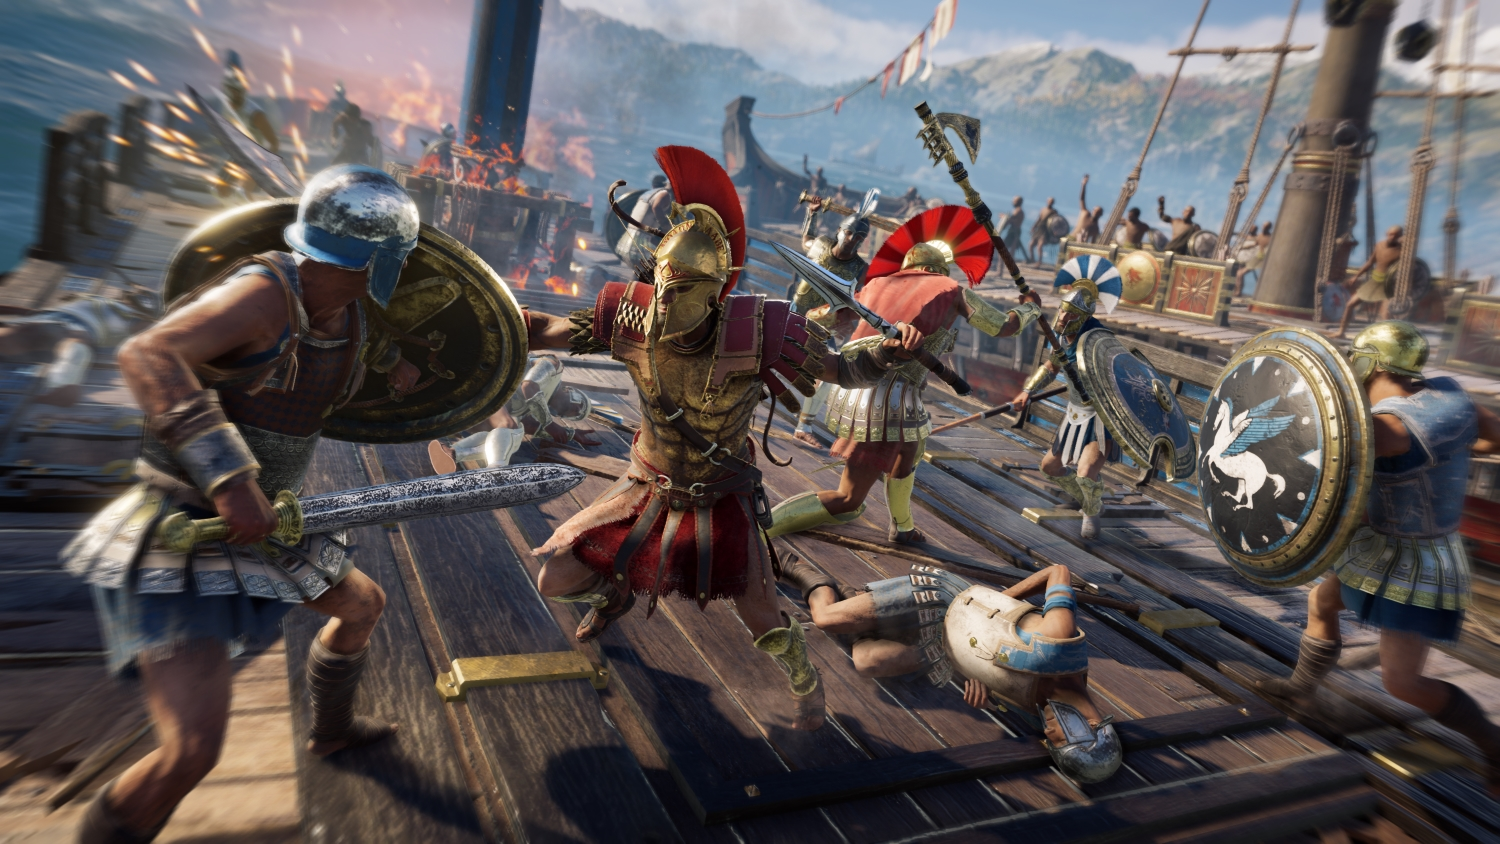 Assassin's Creed Odyssey (PS4) - does bigger mean better?